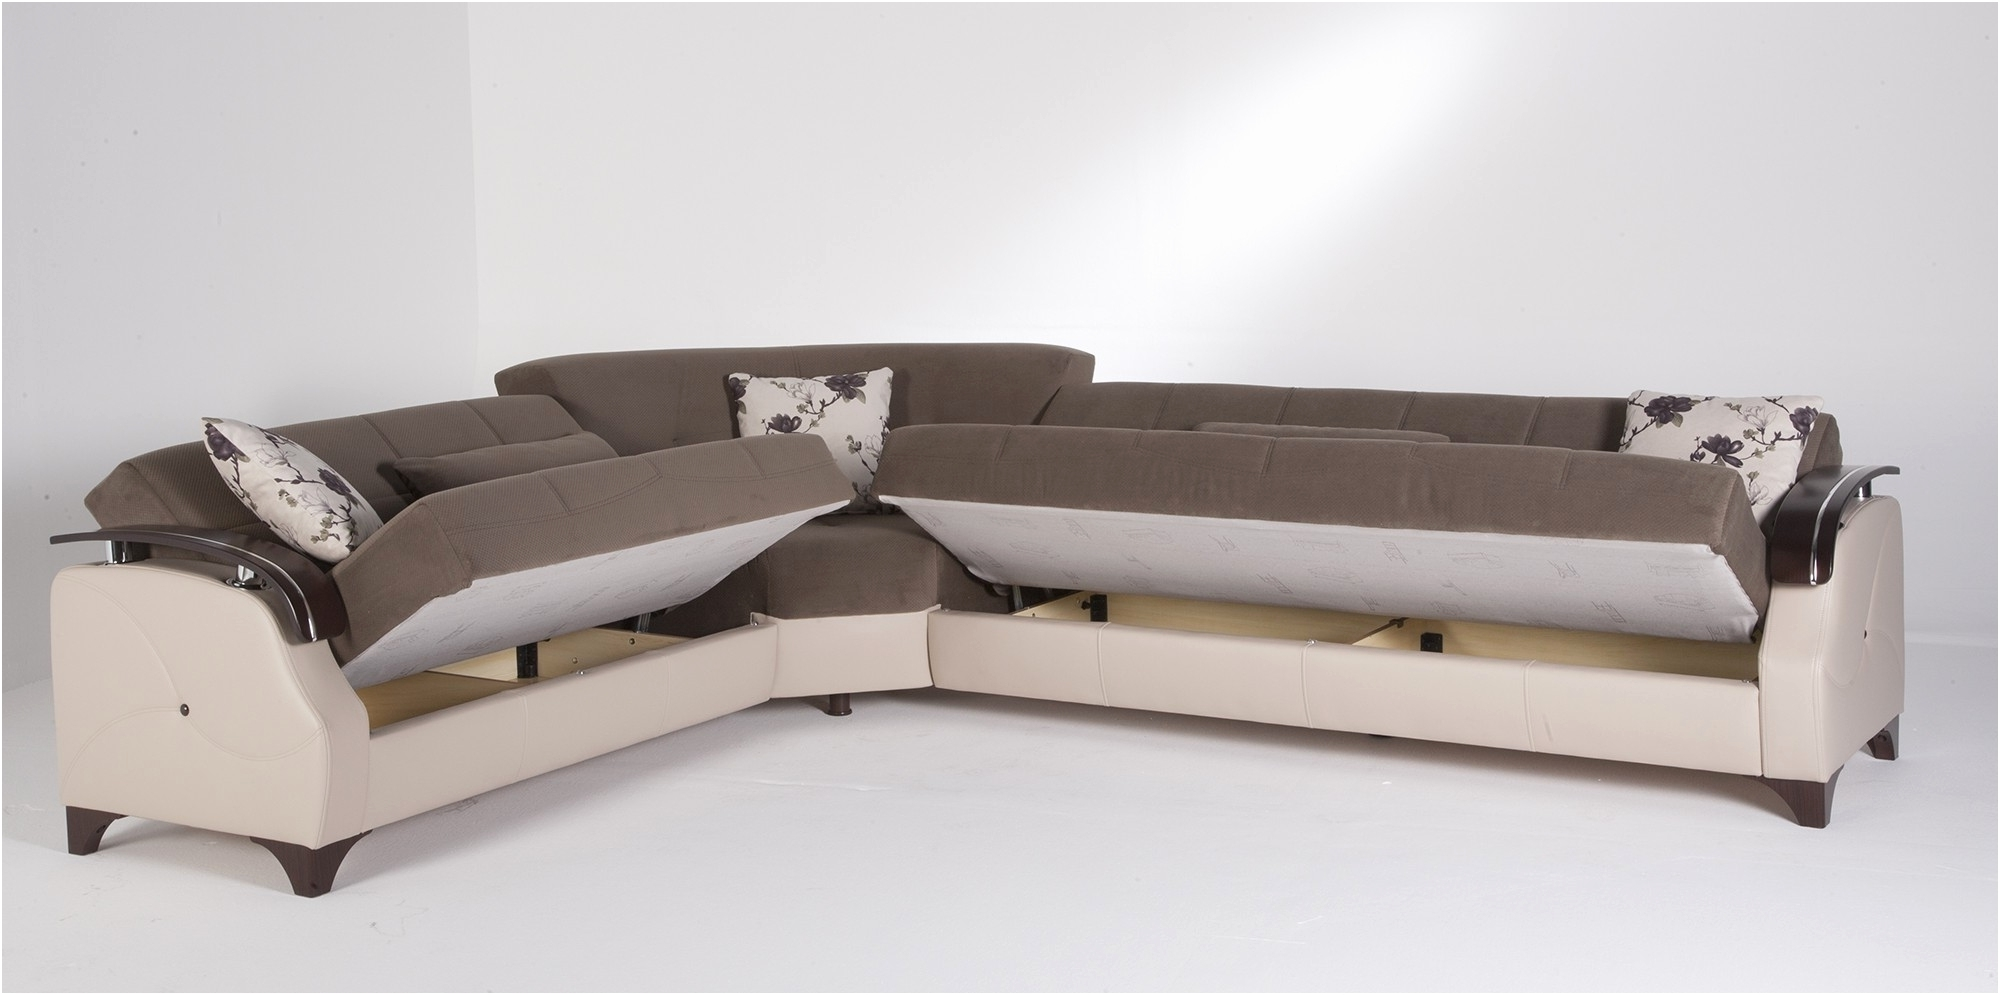 Small Modular Sofas Intended For Recent Living Room : Modular Sofas For Small Spaces Space Saving Dining (View 4 of 15)